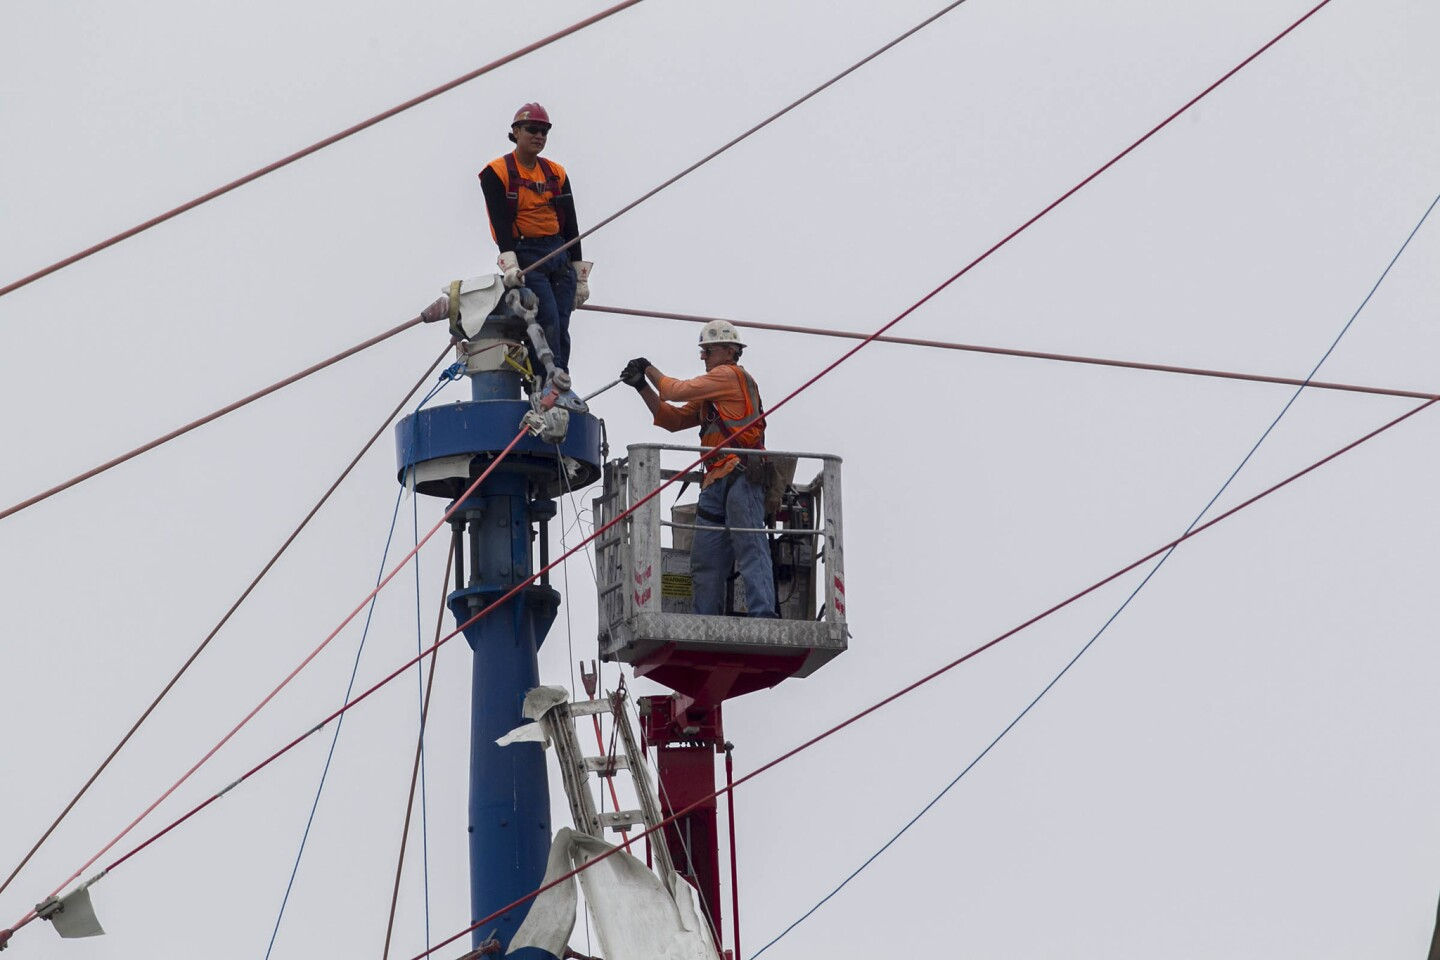 Workers lowered a disconnected section of the roof rigging.